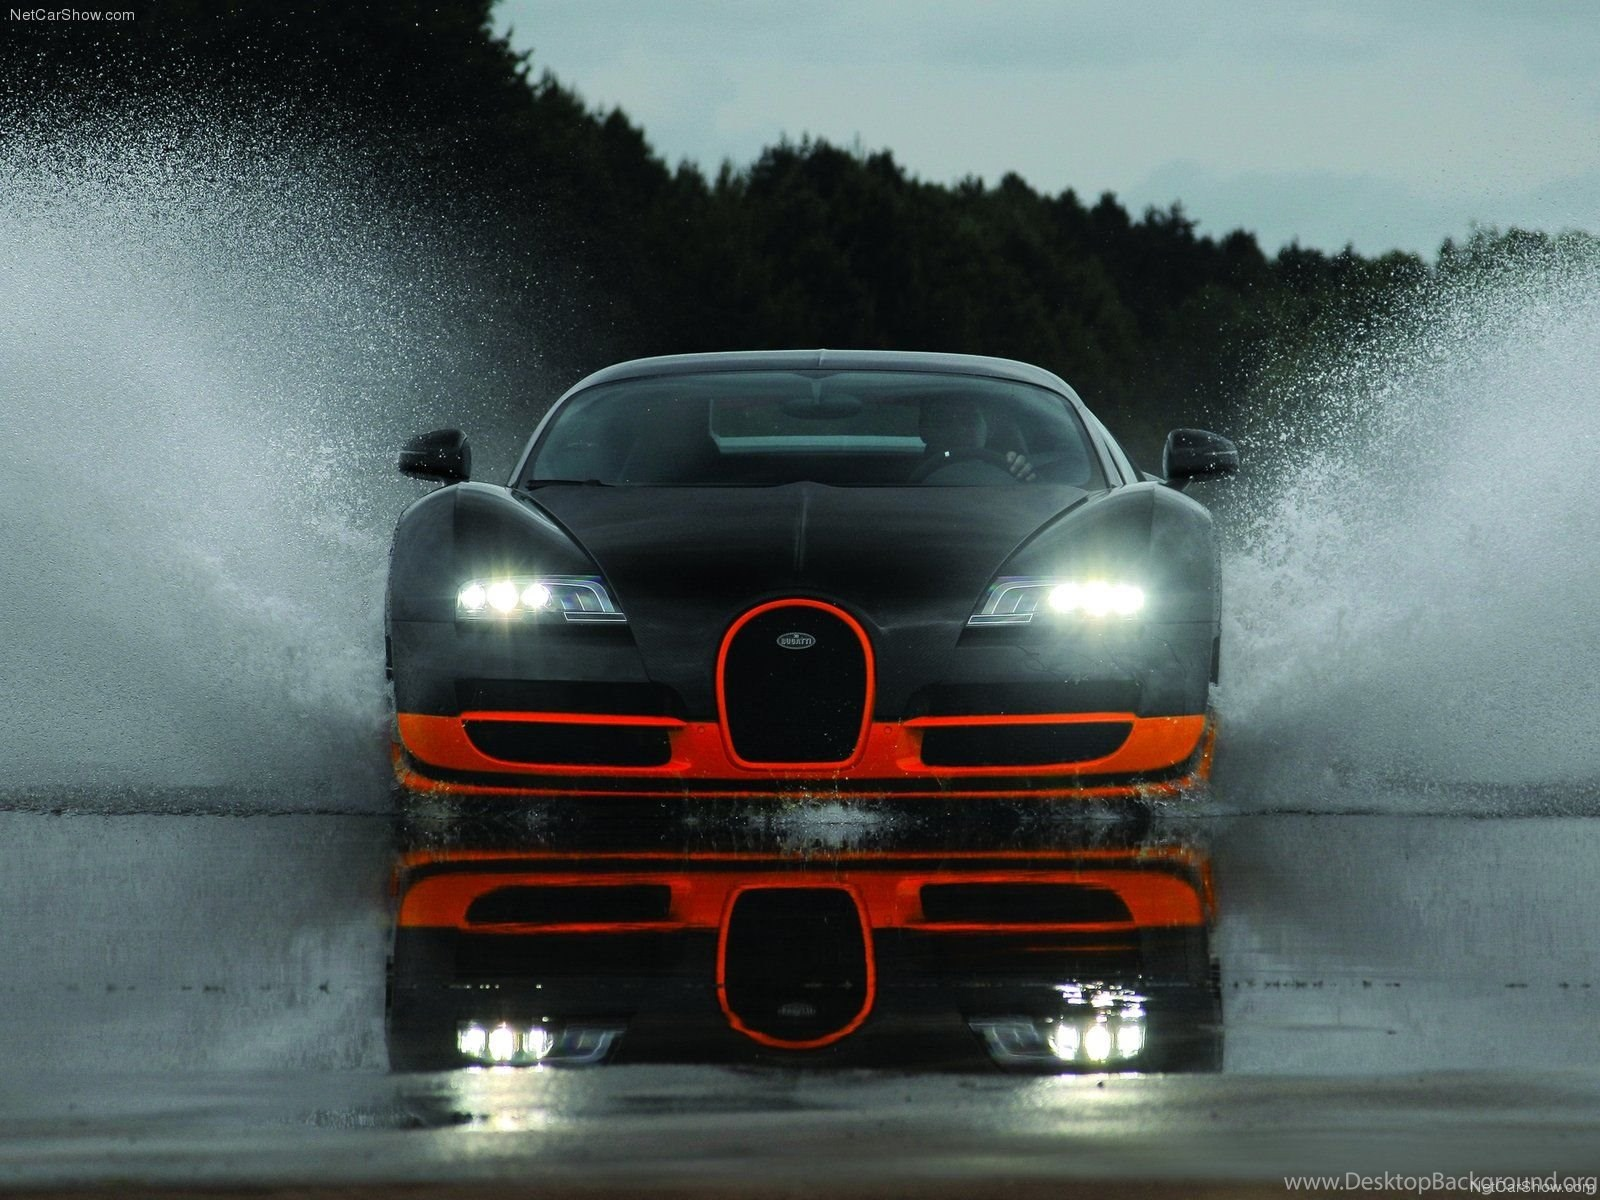 Bugatti Veyron Super Sport Iphone Wallpapers Image Desktop Background